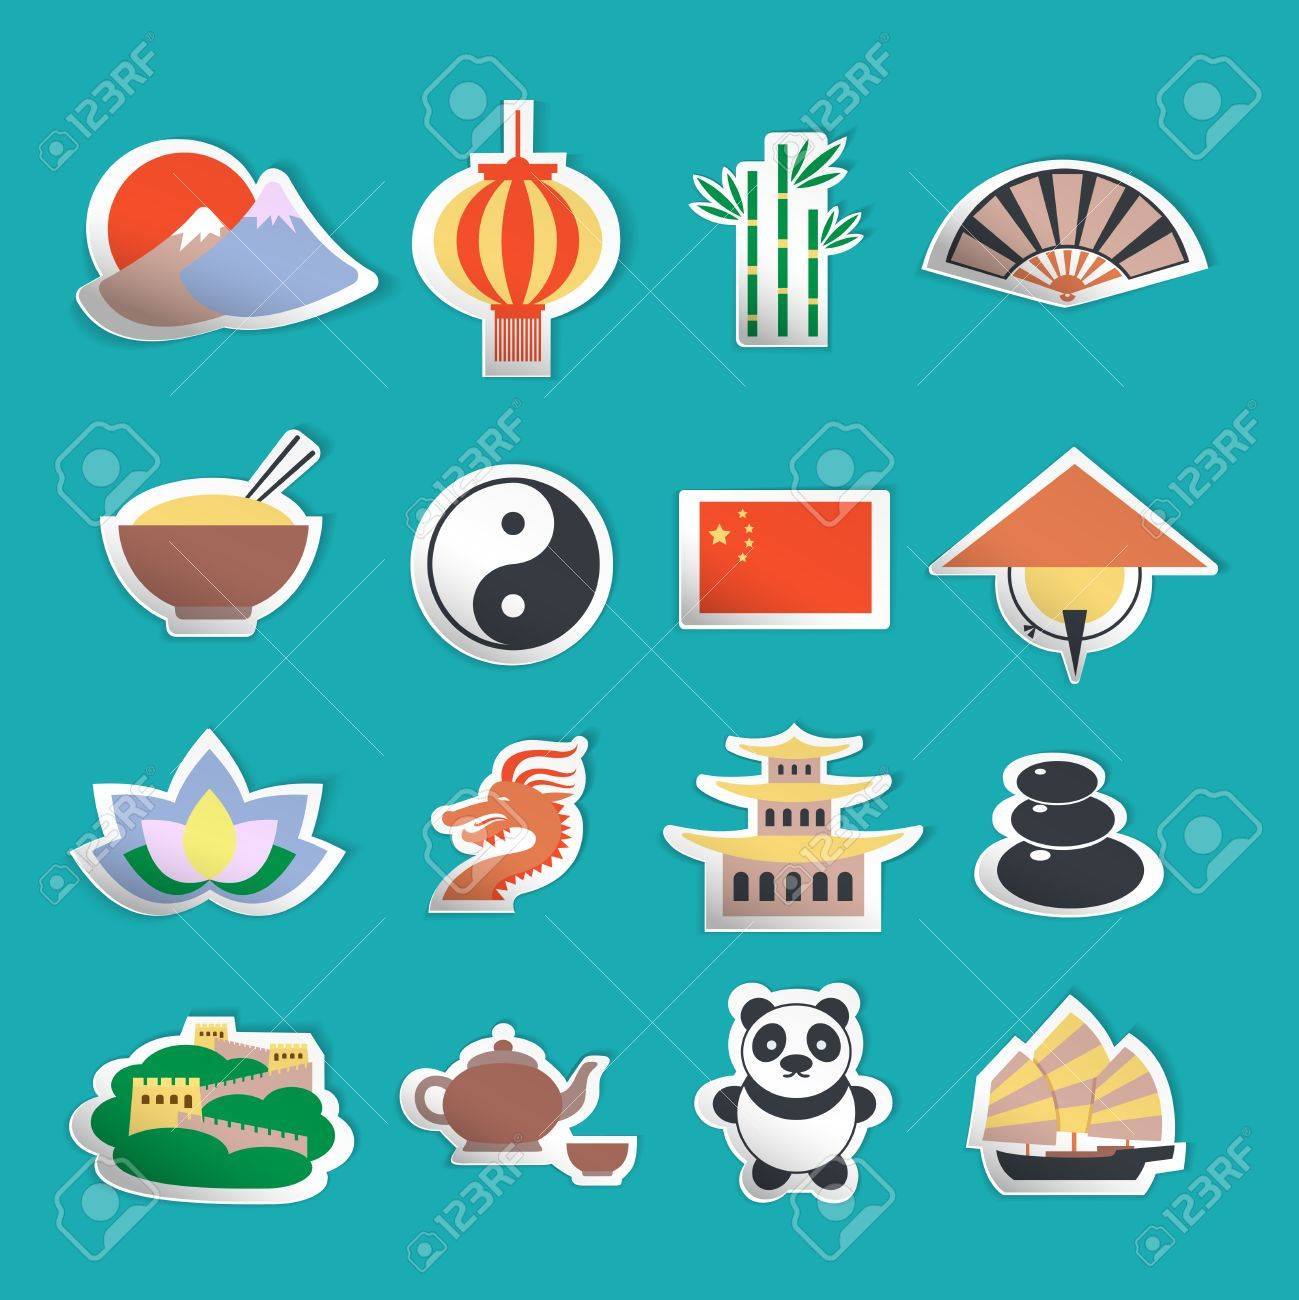 China Travel Traditional Culture Symbols Stickers Set Isolated